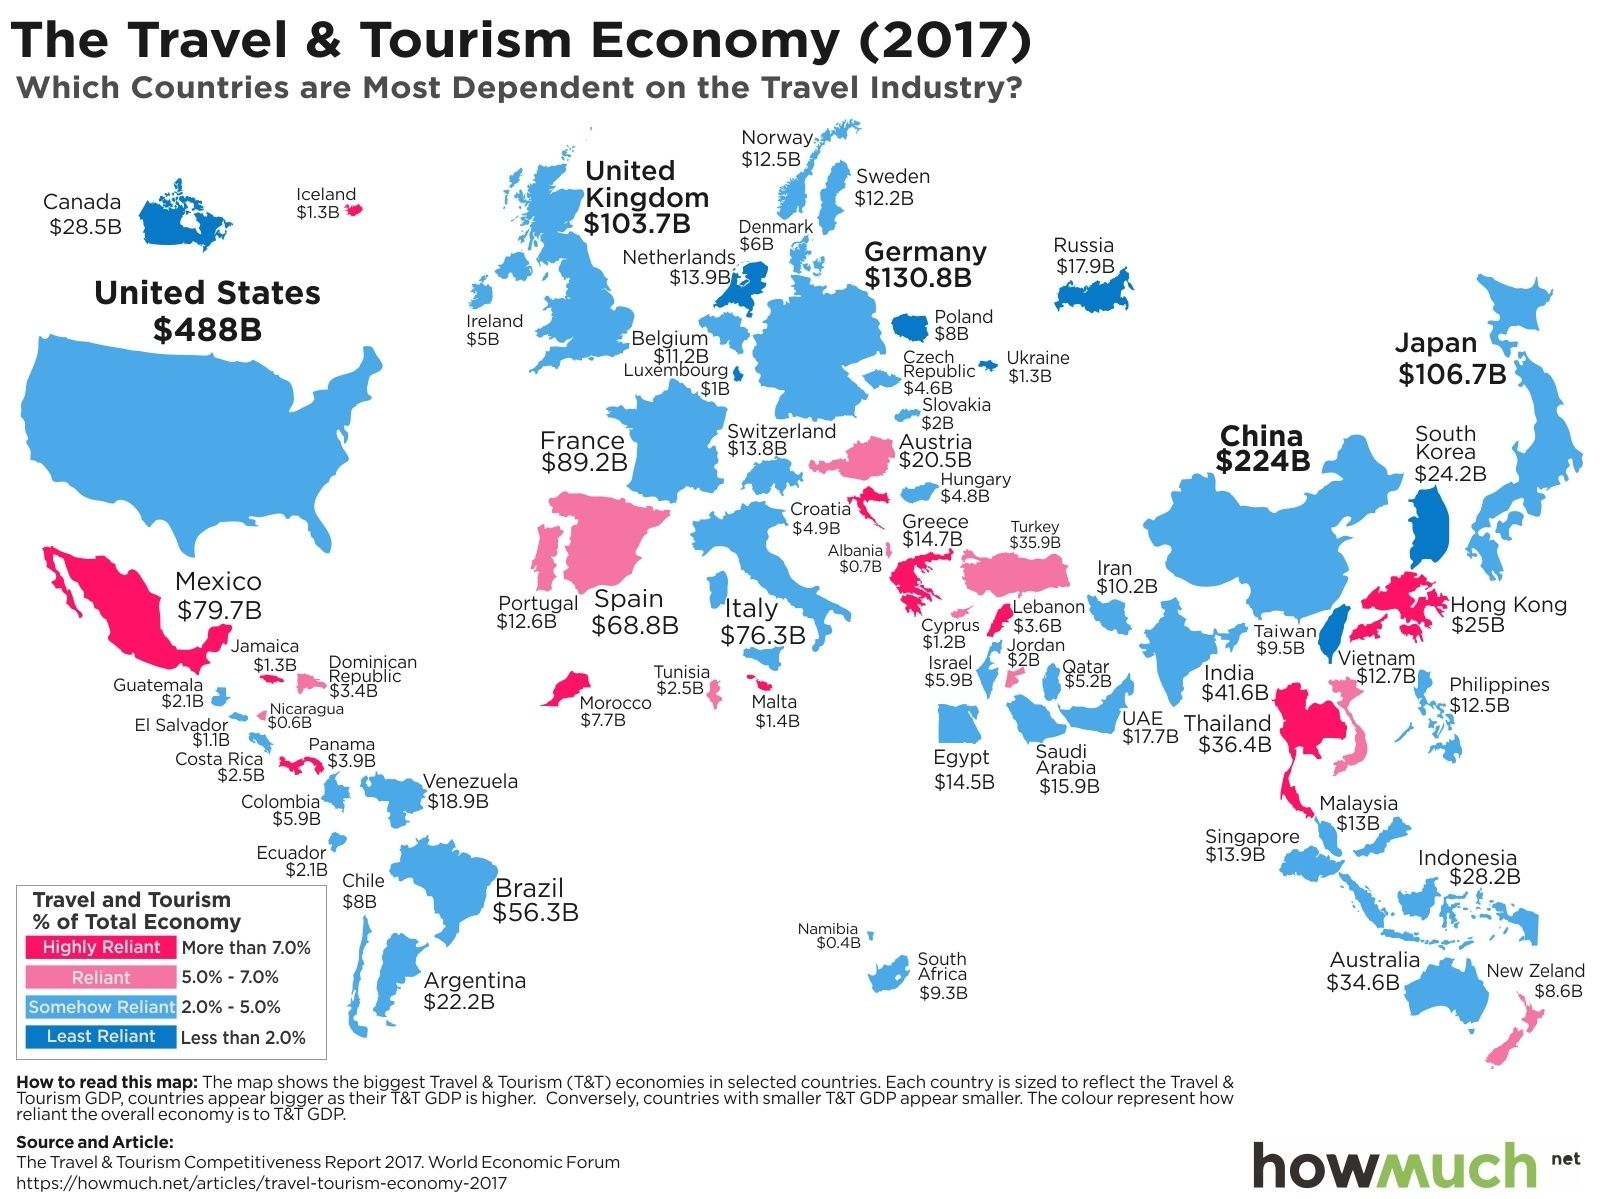 travel-industry-2017-ccfb.jpg